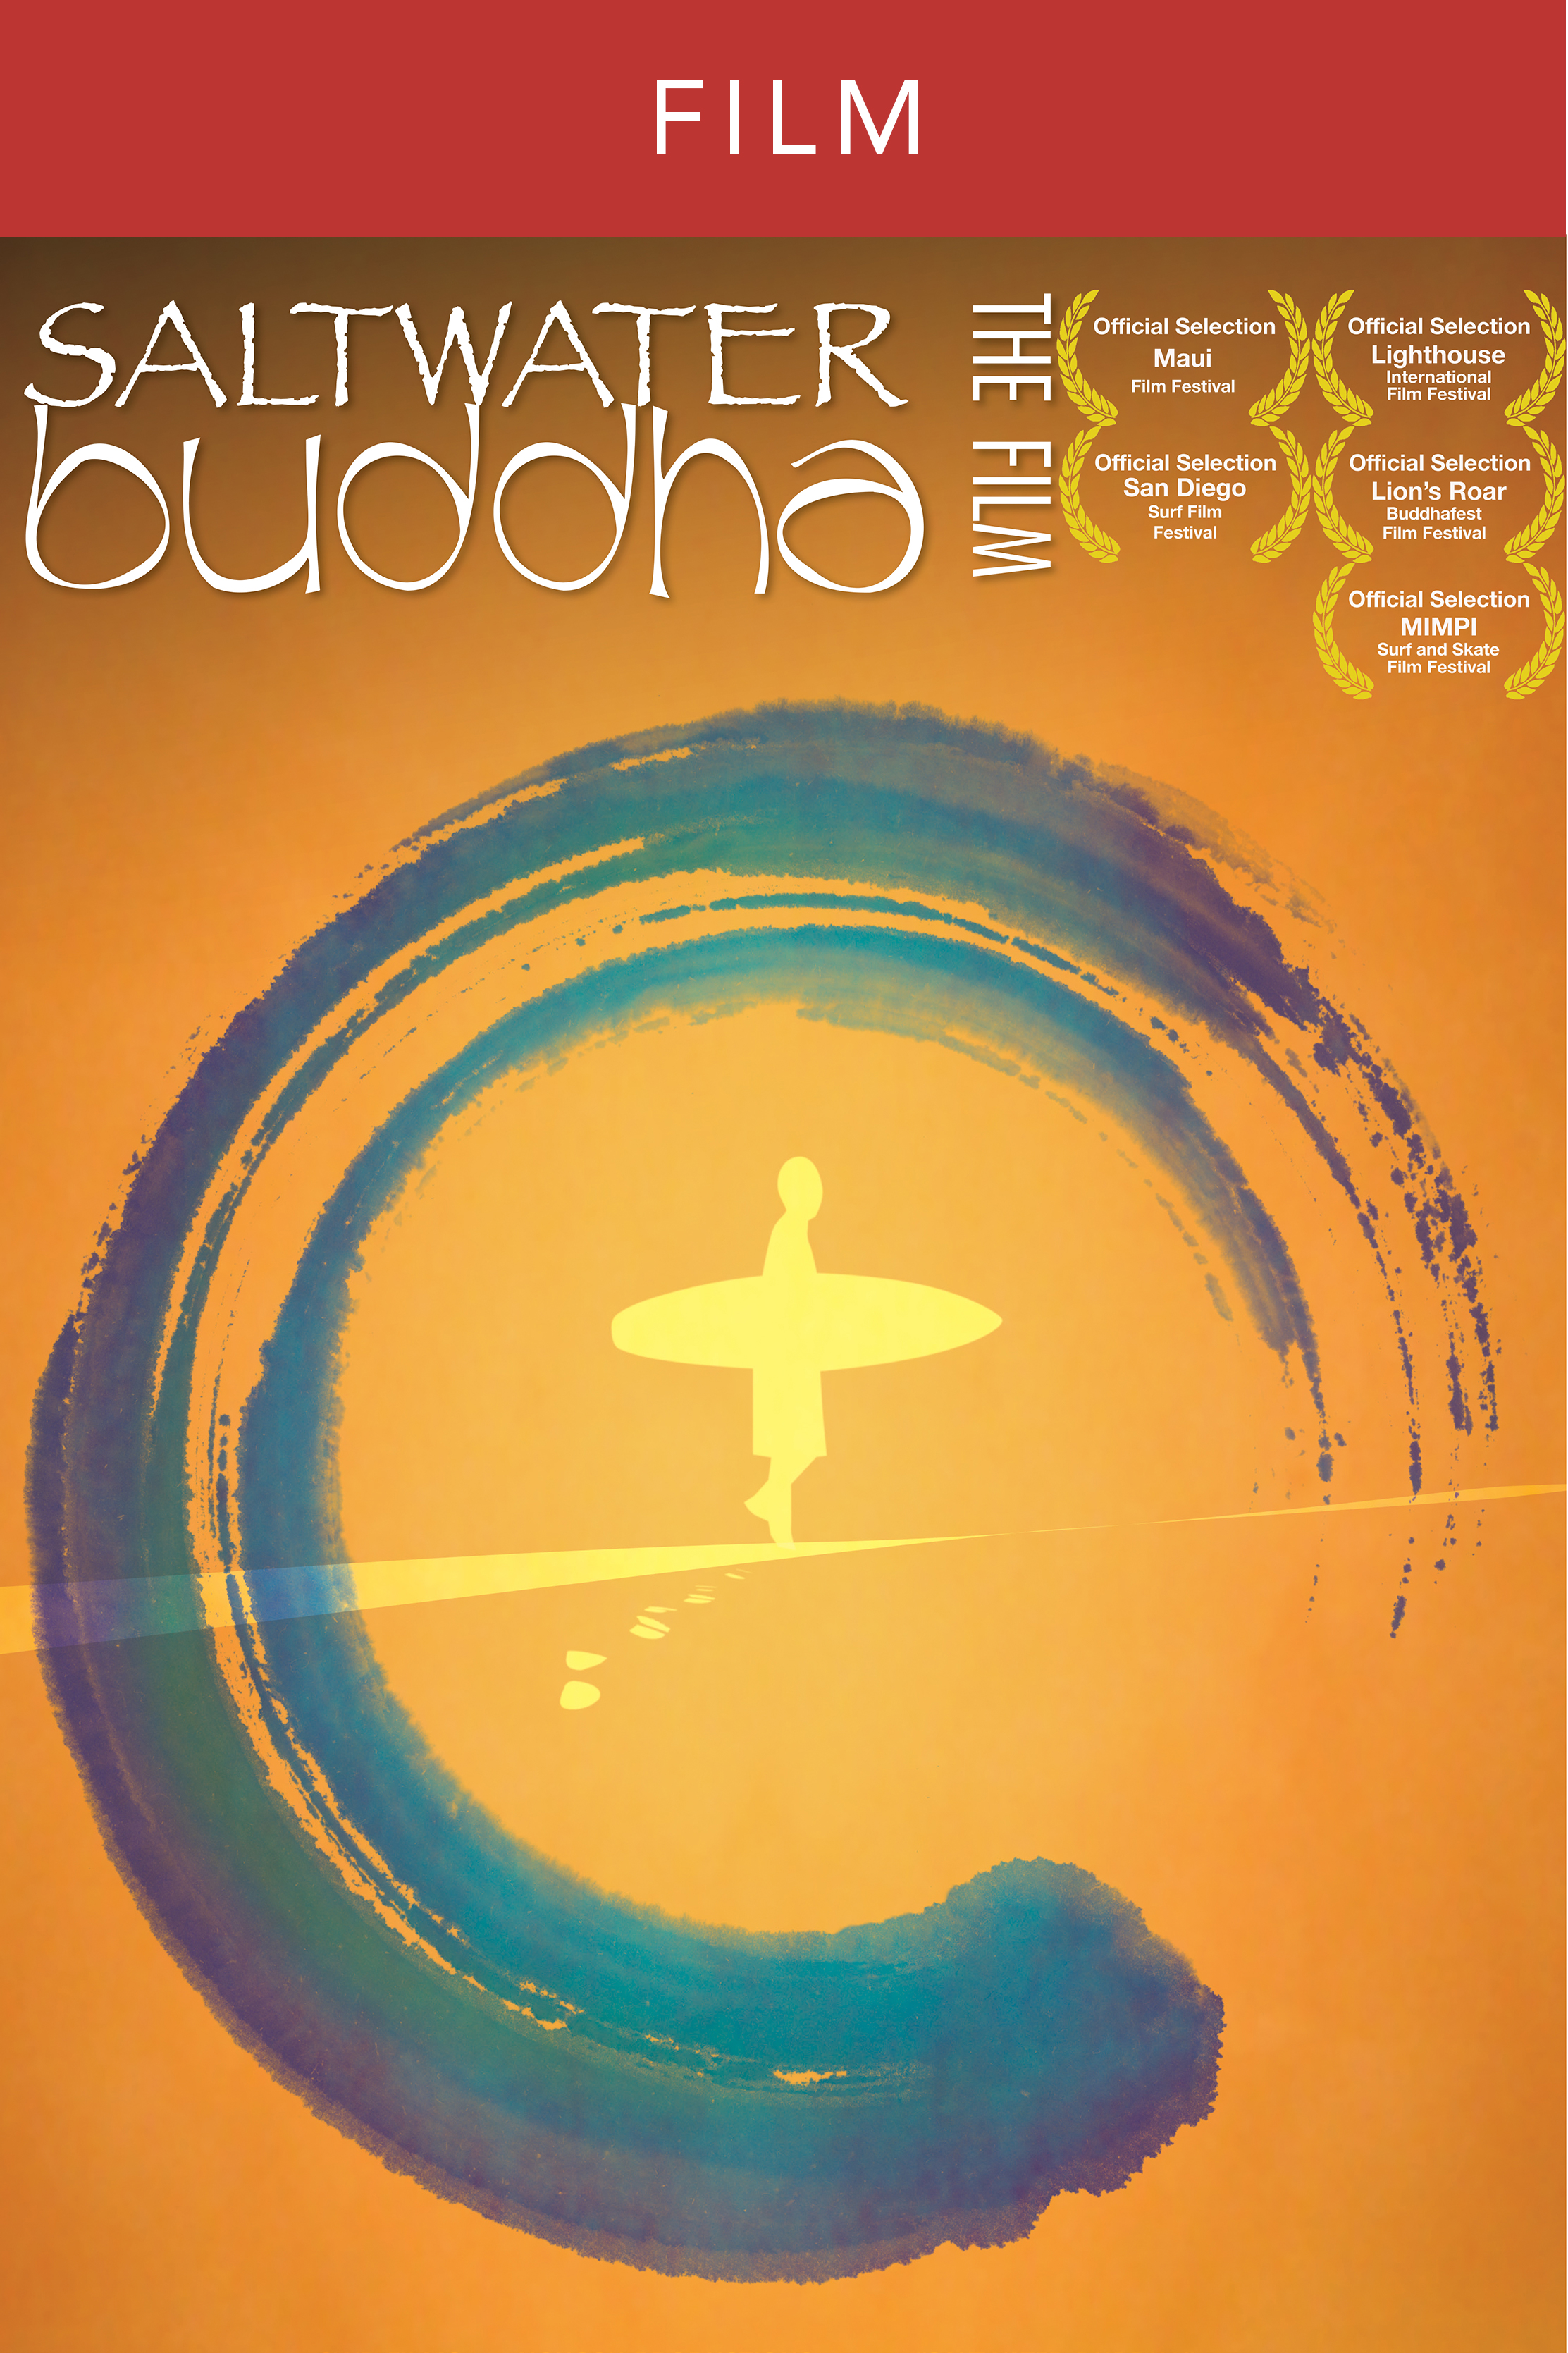 Saltwater Buddha the Film – Trailer